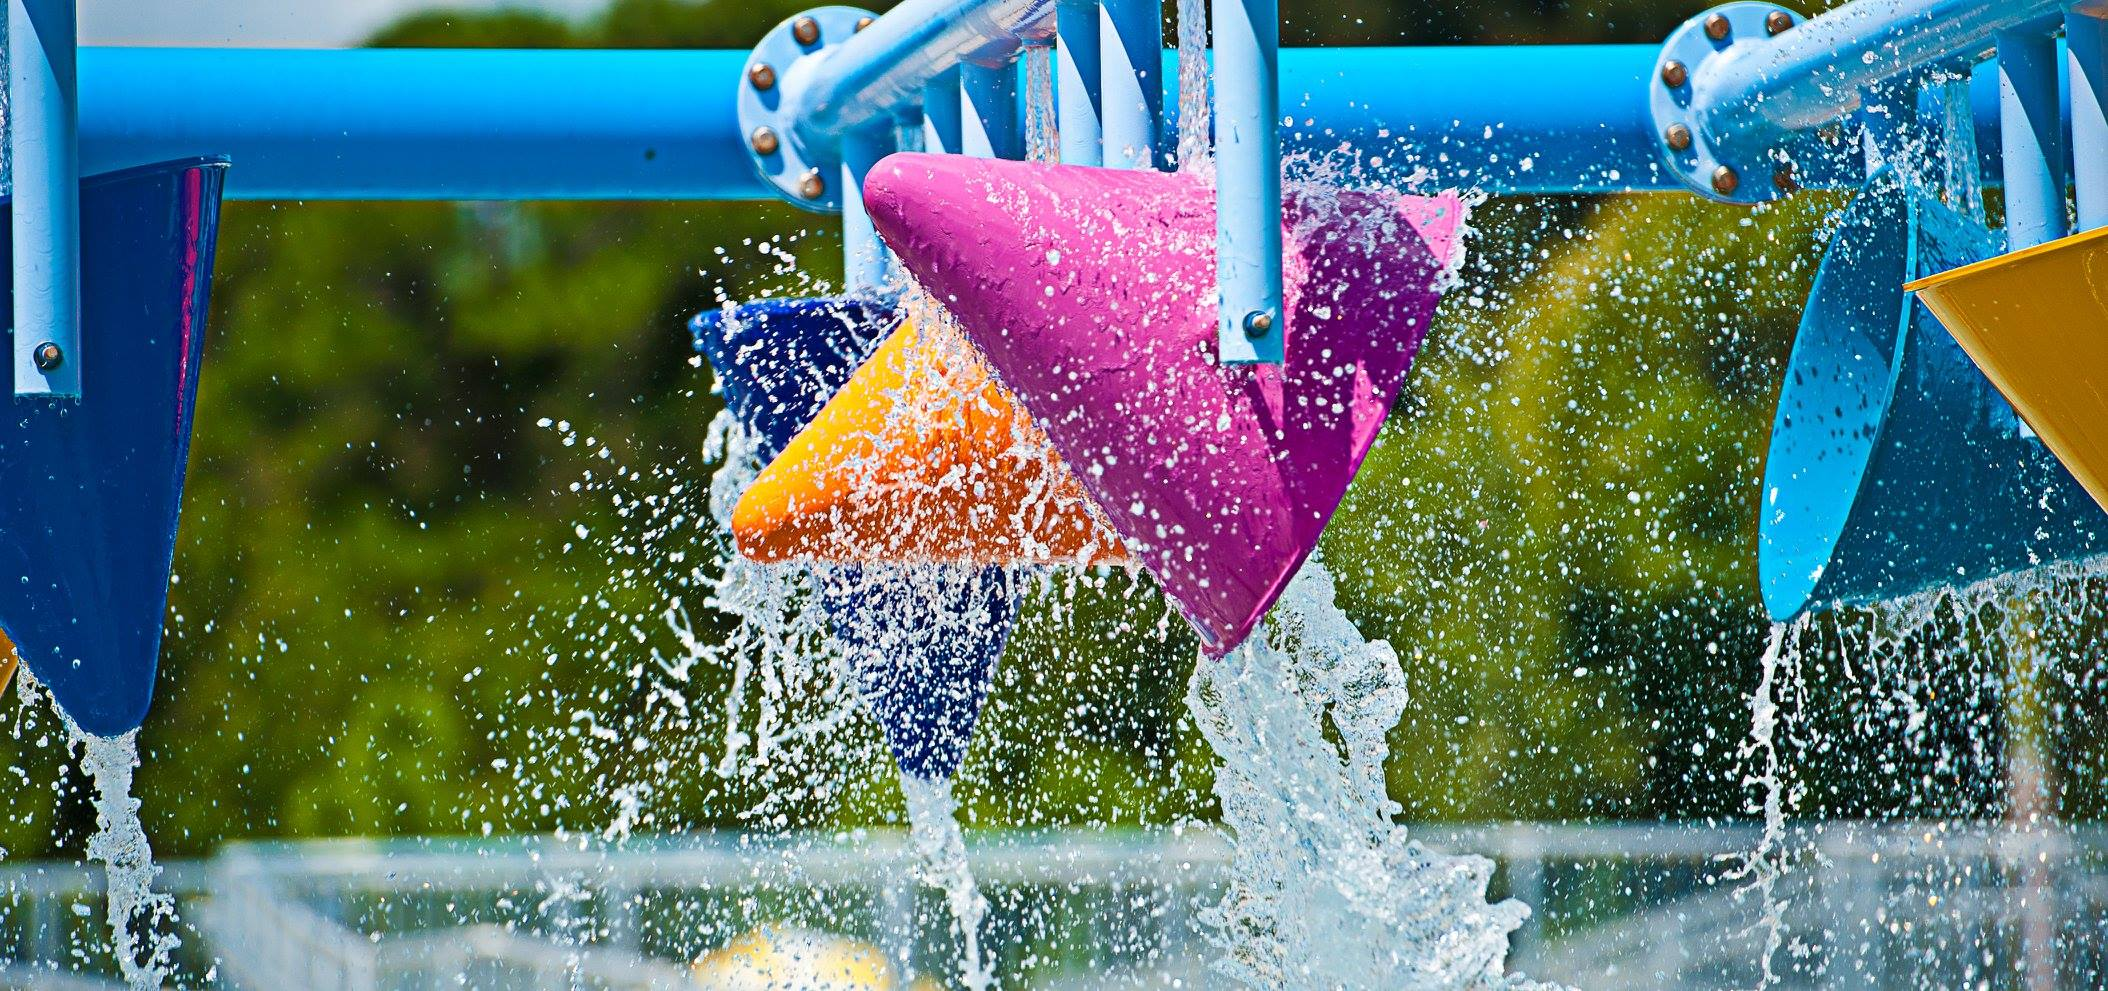 Water features at Sailfish Splash Waterpark